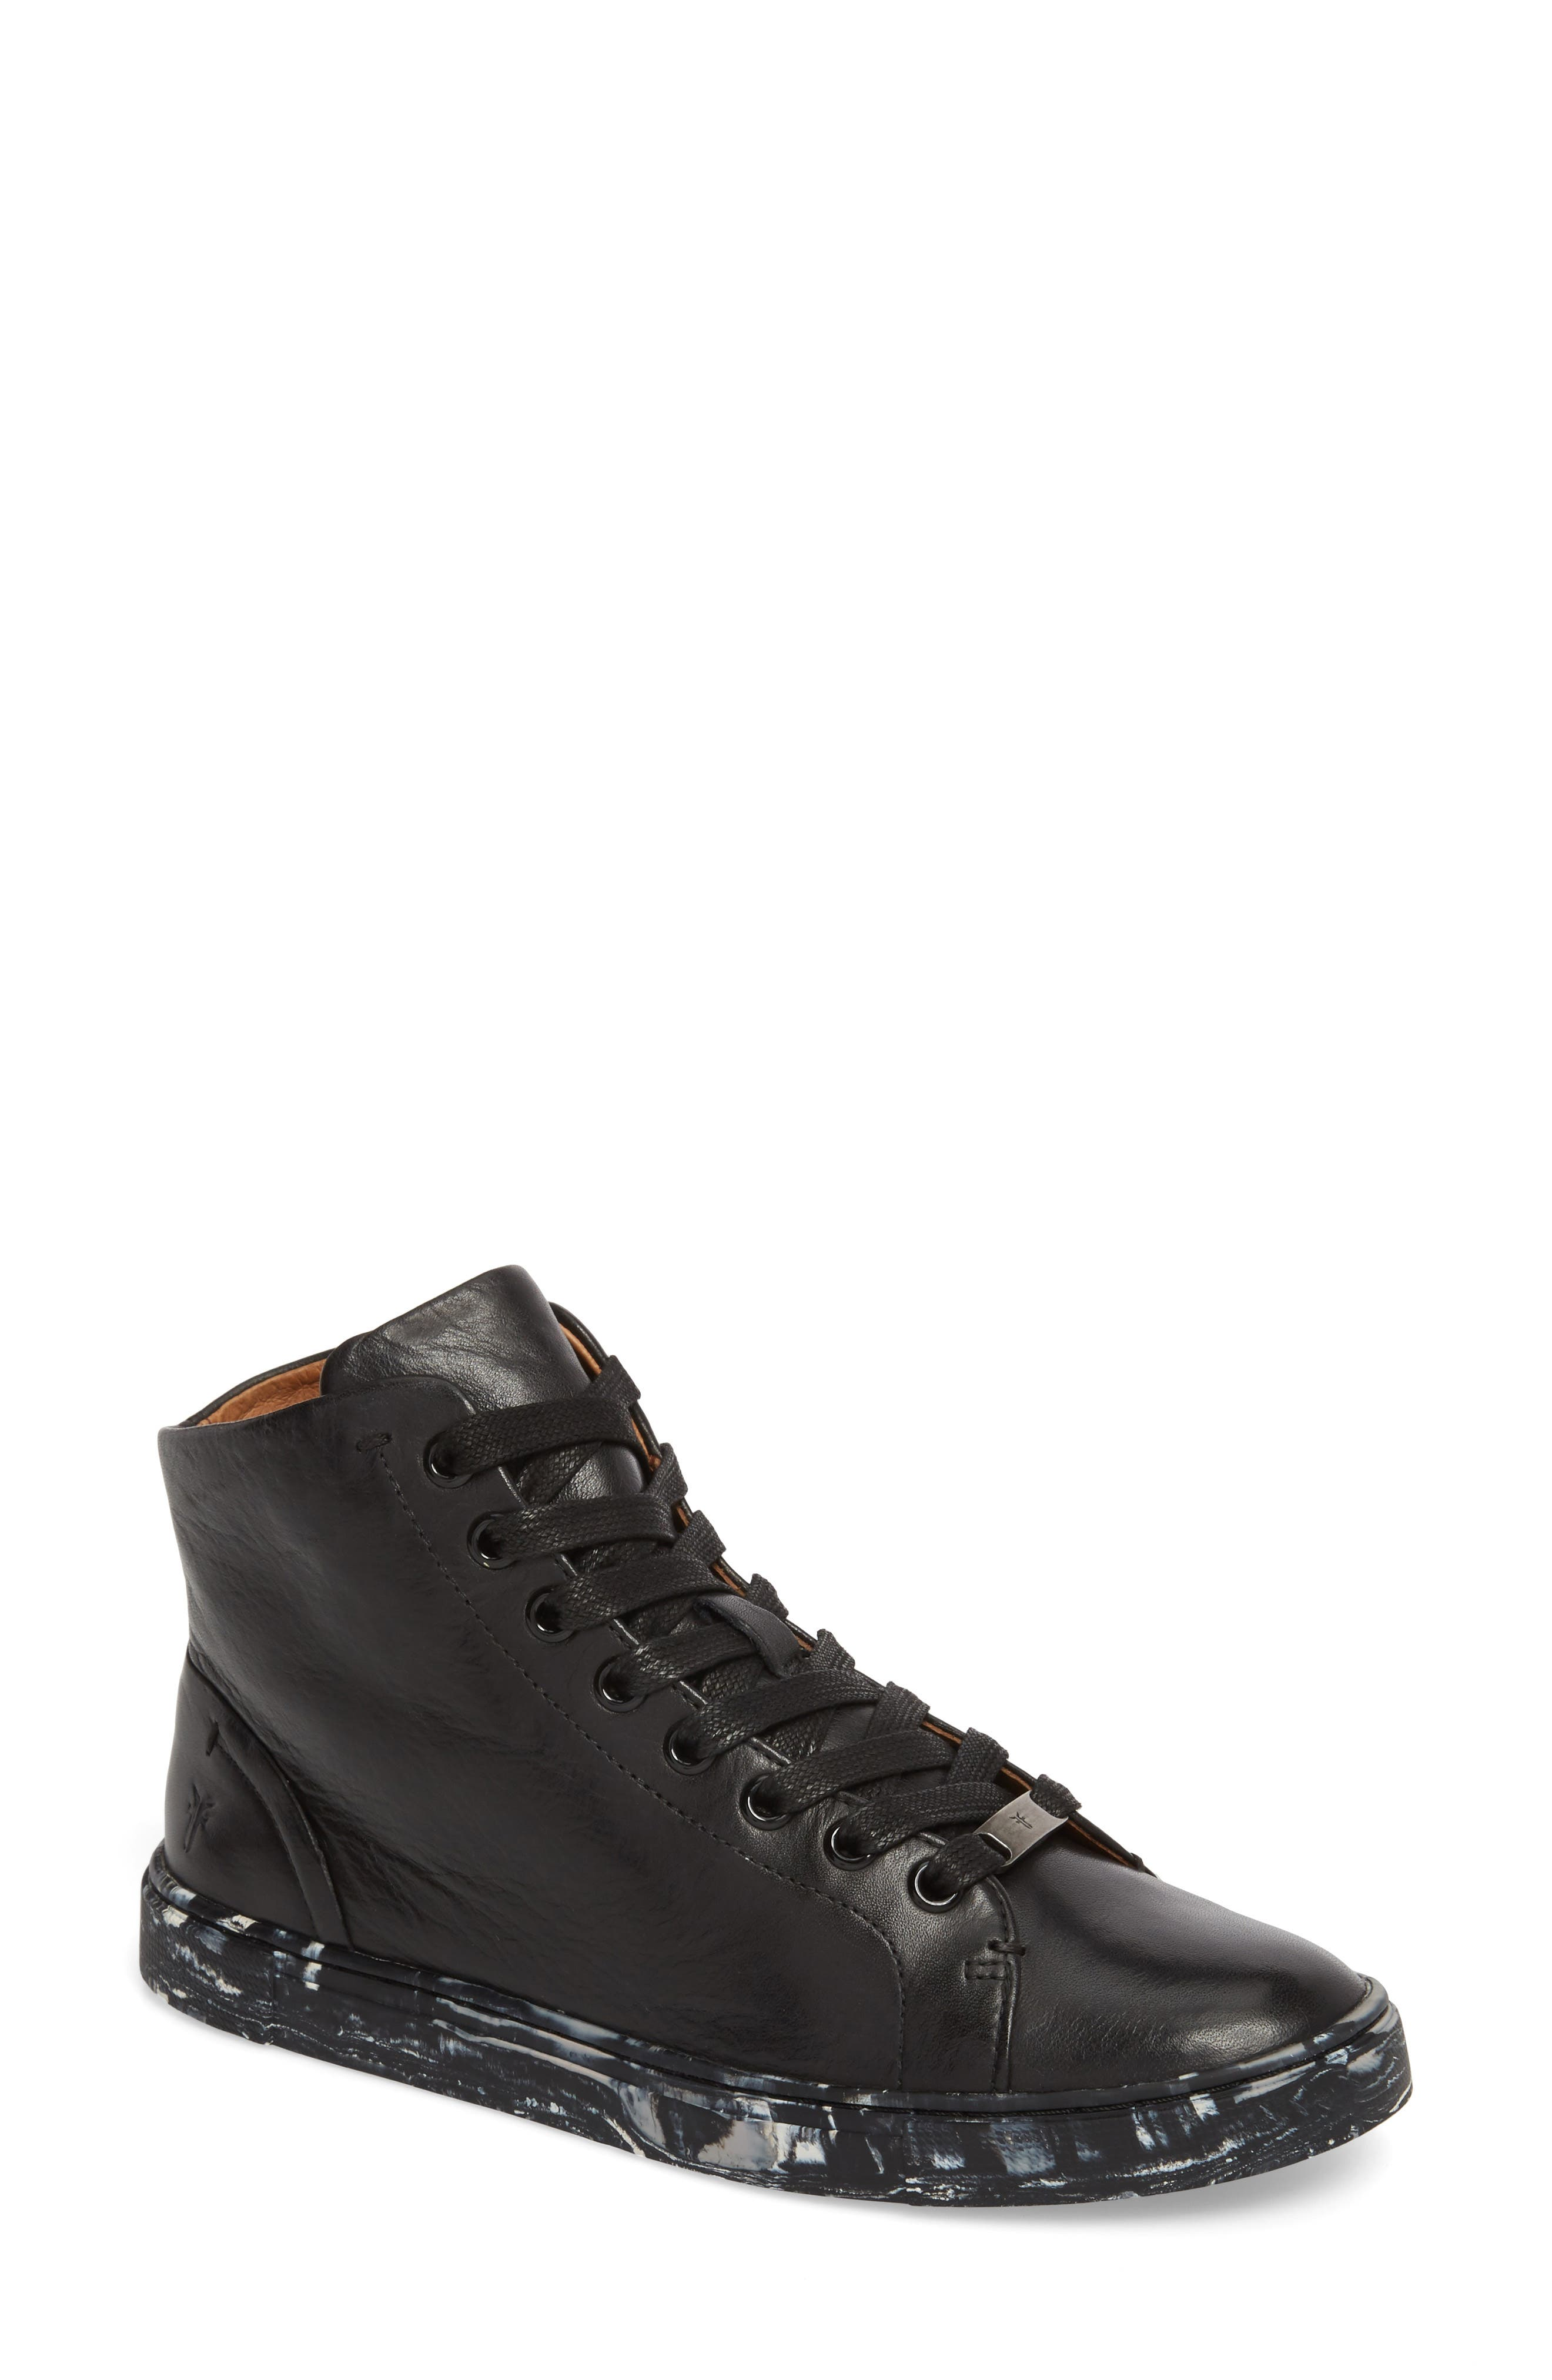 Ivy High Top Sneaker,                         Main,                         color, Black Leather